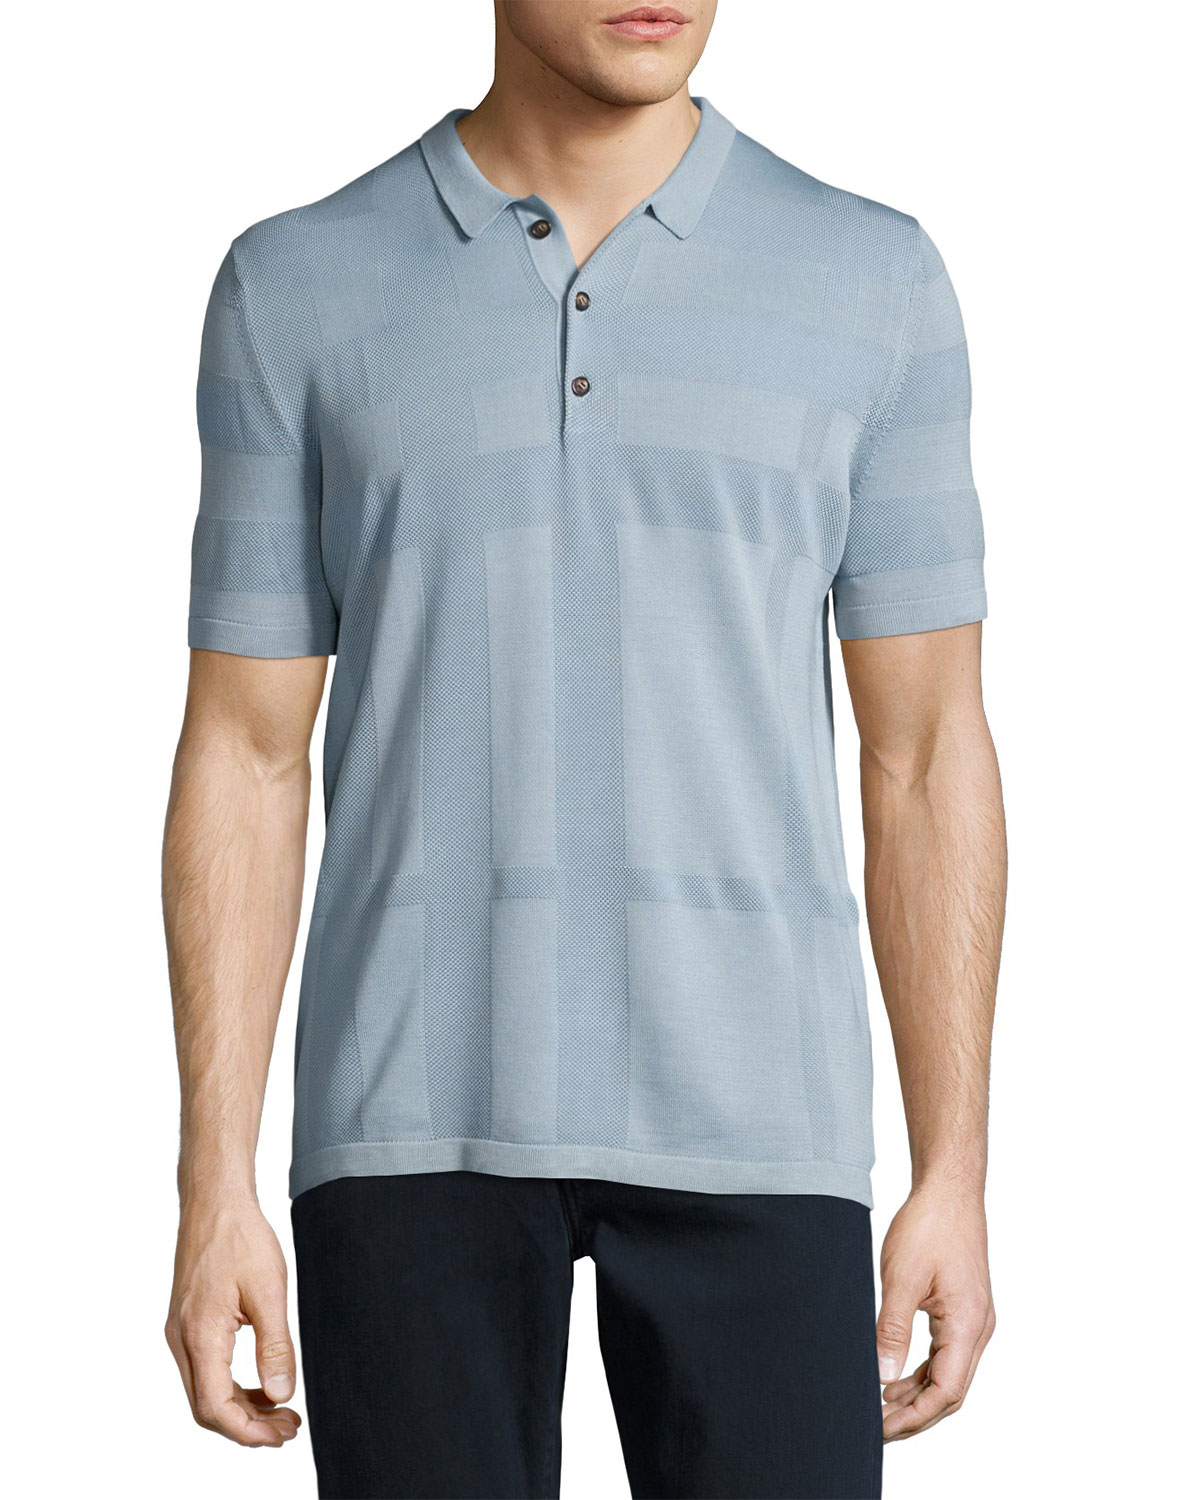 Enlarged Tonal Check Polo Shirt, Slate Blue